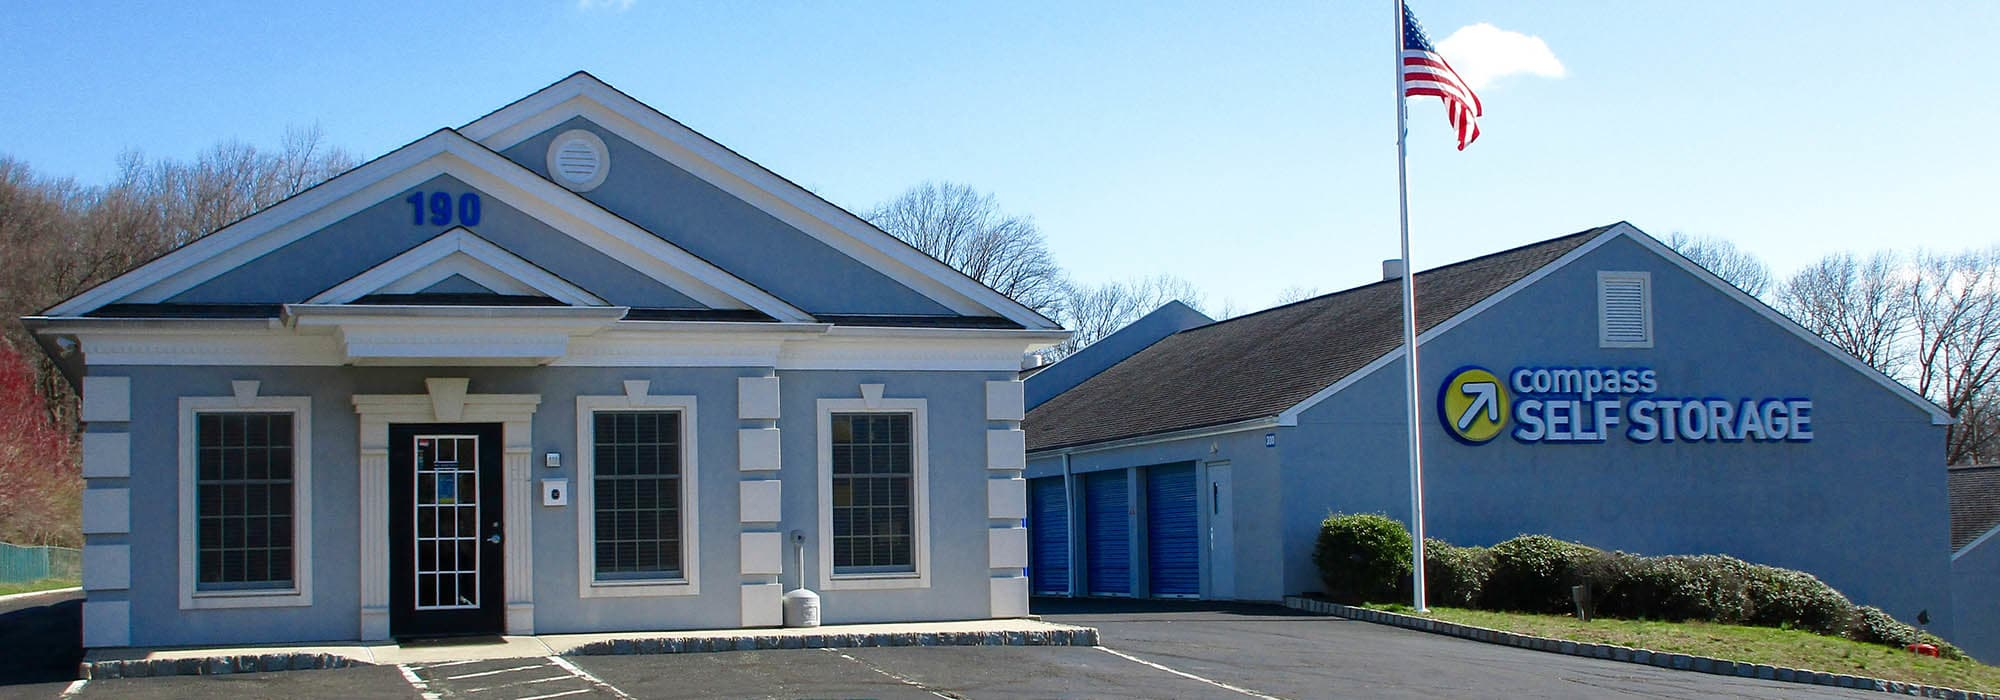 Self storage in Asbury NJ